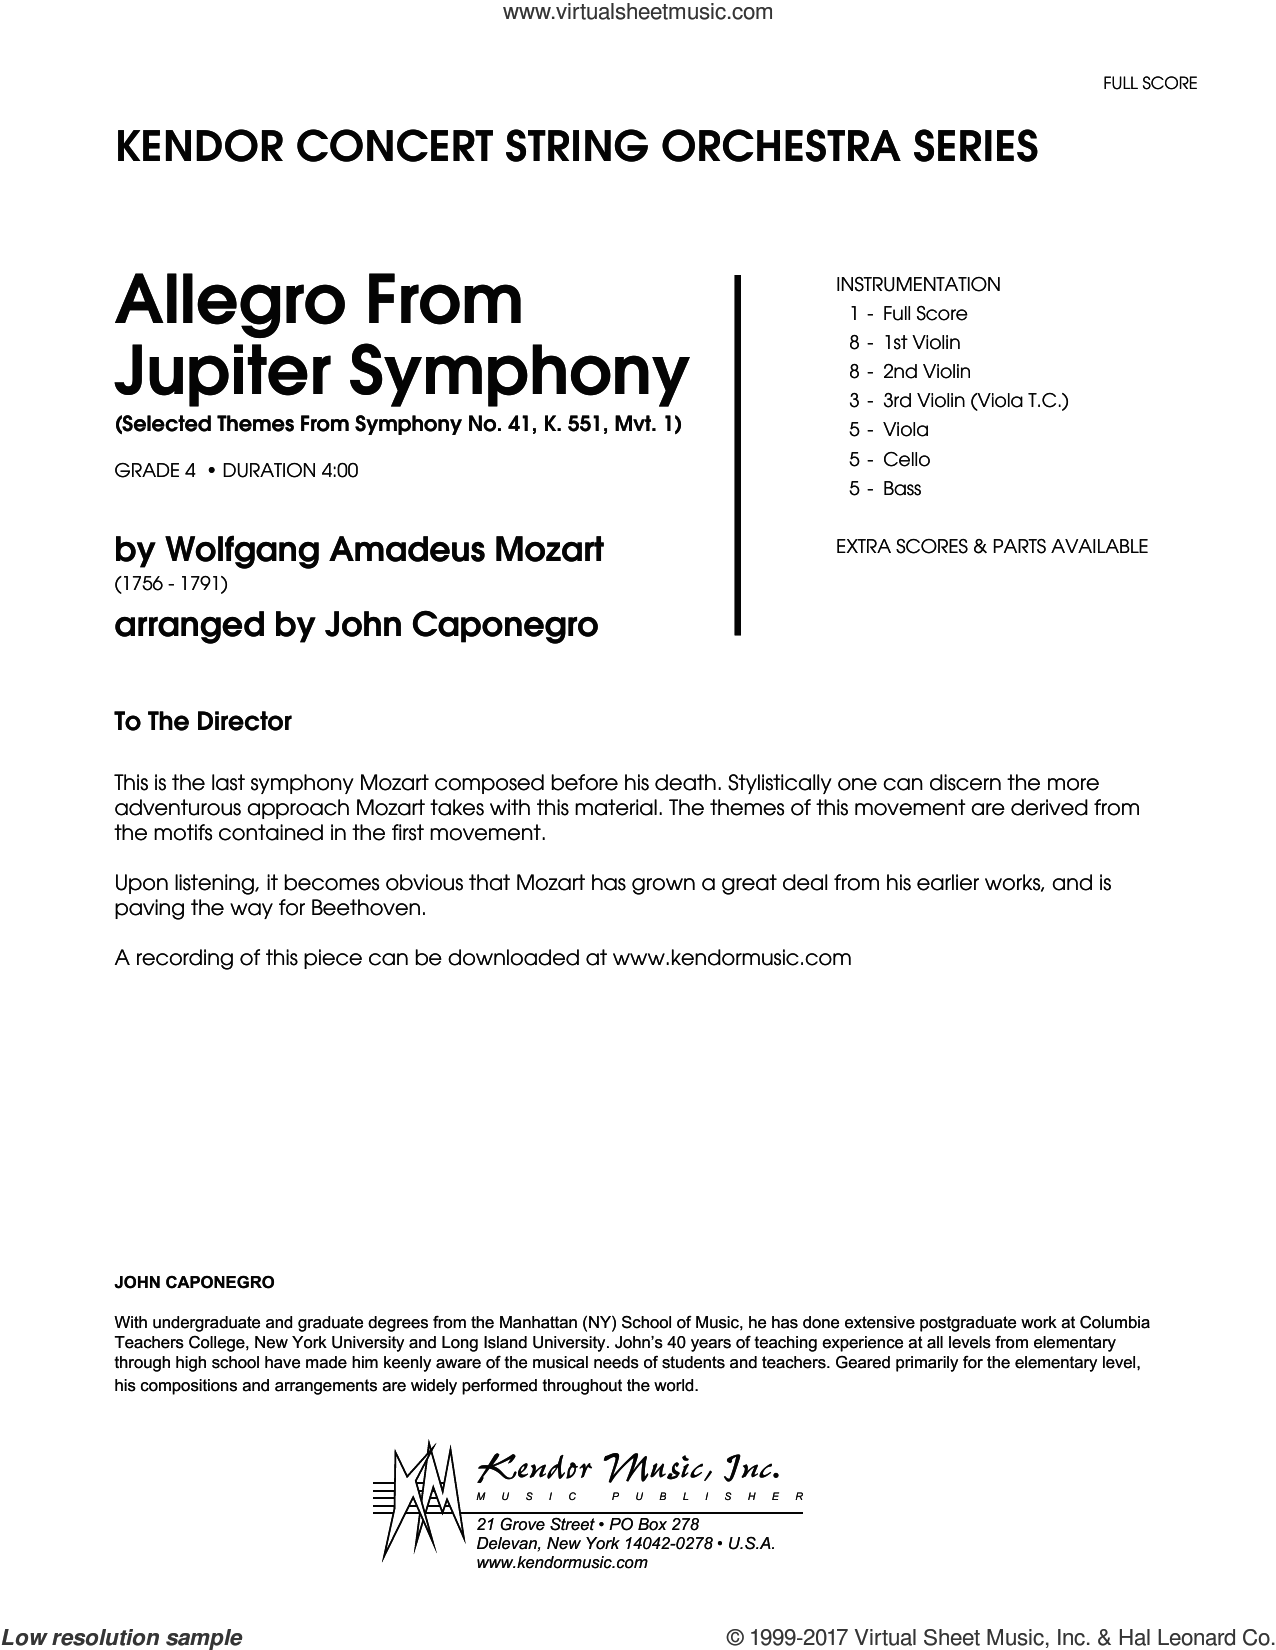 Allegro From Jupiter Symphony (COMPLETE) sheet music for orchestra by John Caponegro and Wolfgang Amadeus Mozart, classical score, intermediate skill level